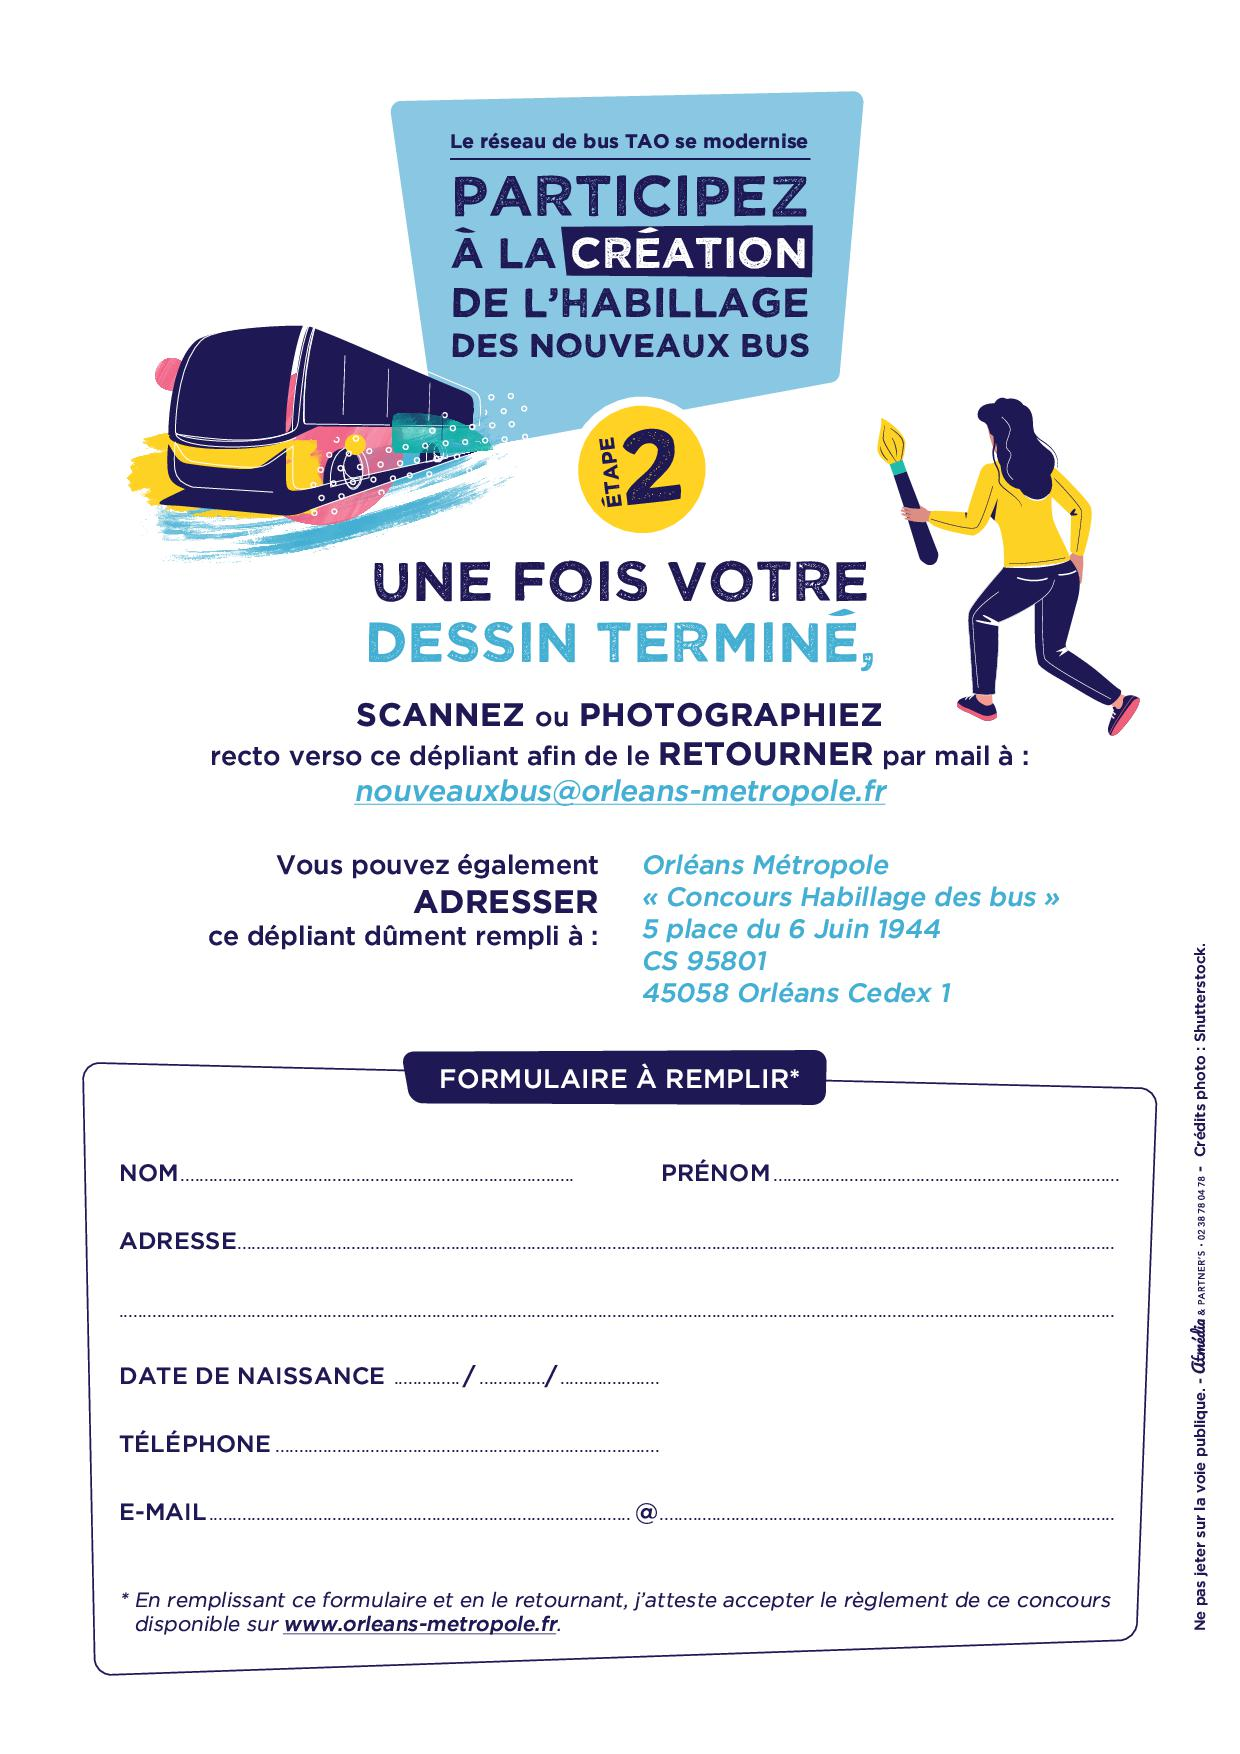 dessine-ton-bus-flyer-a5-web-hd3.jpg